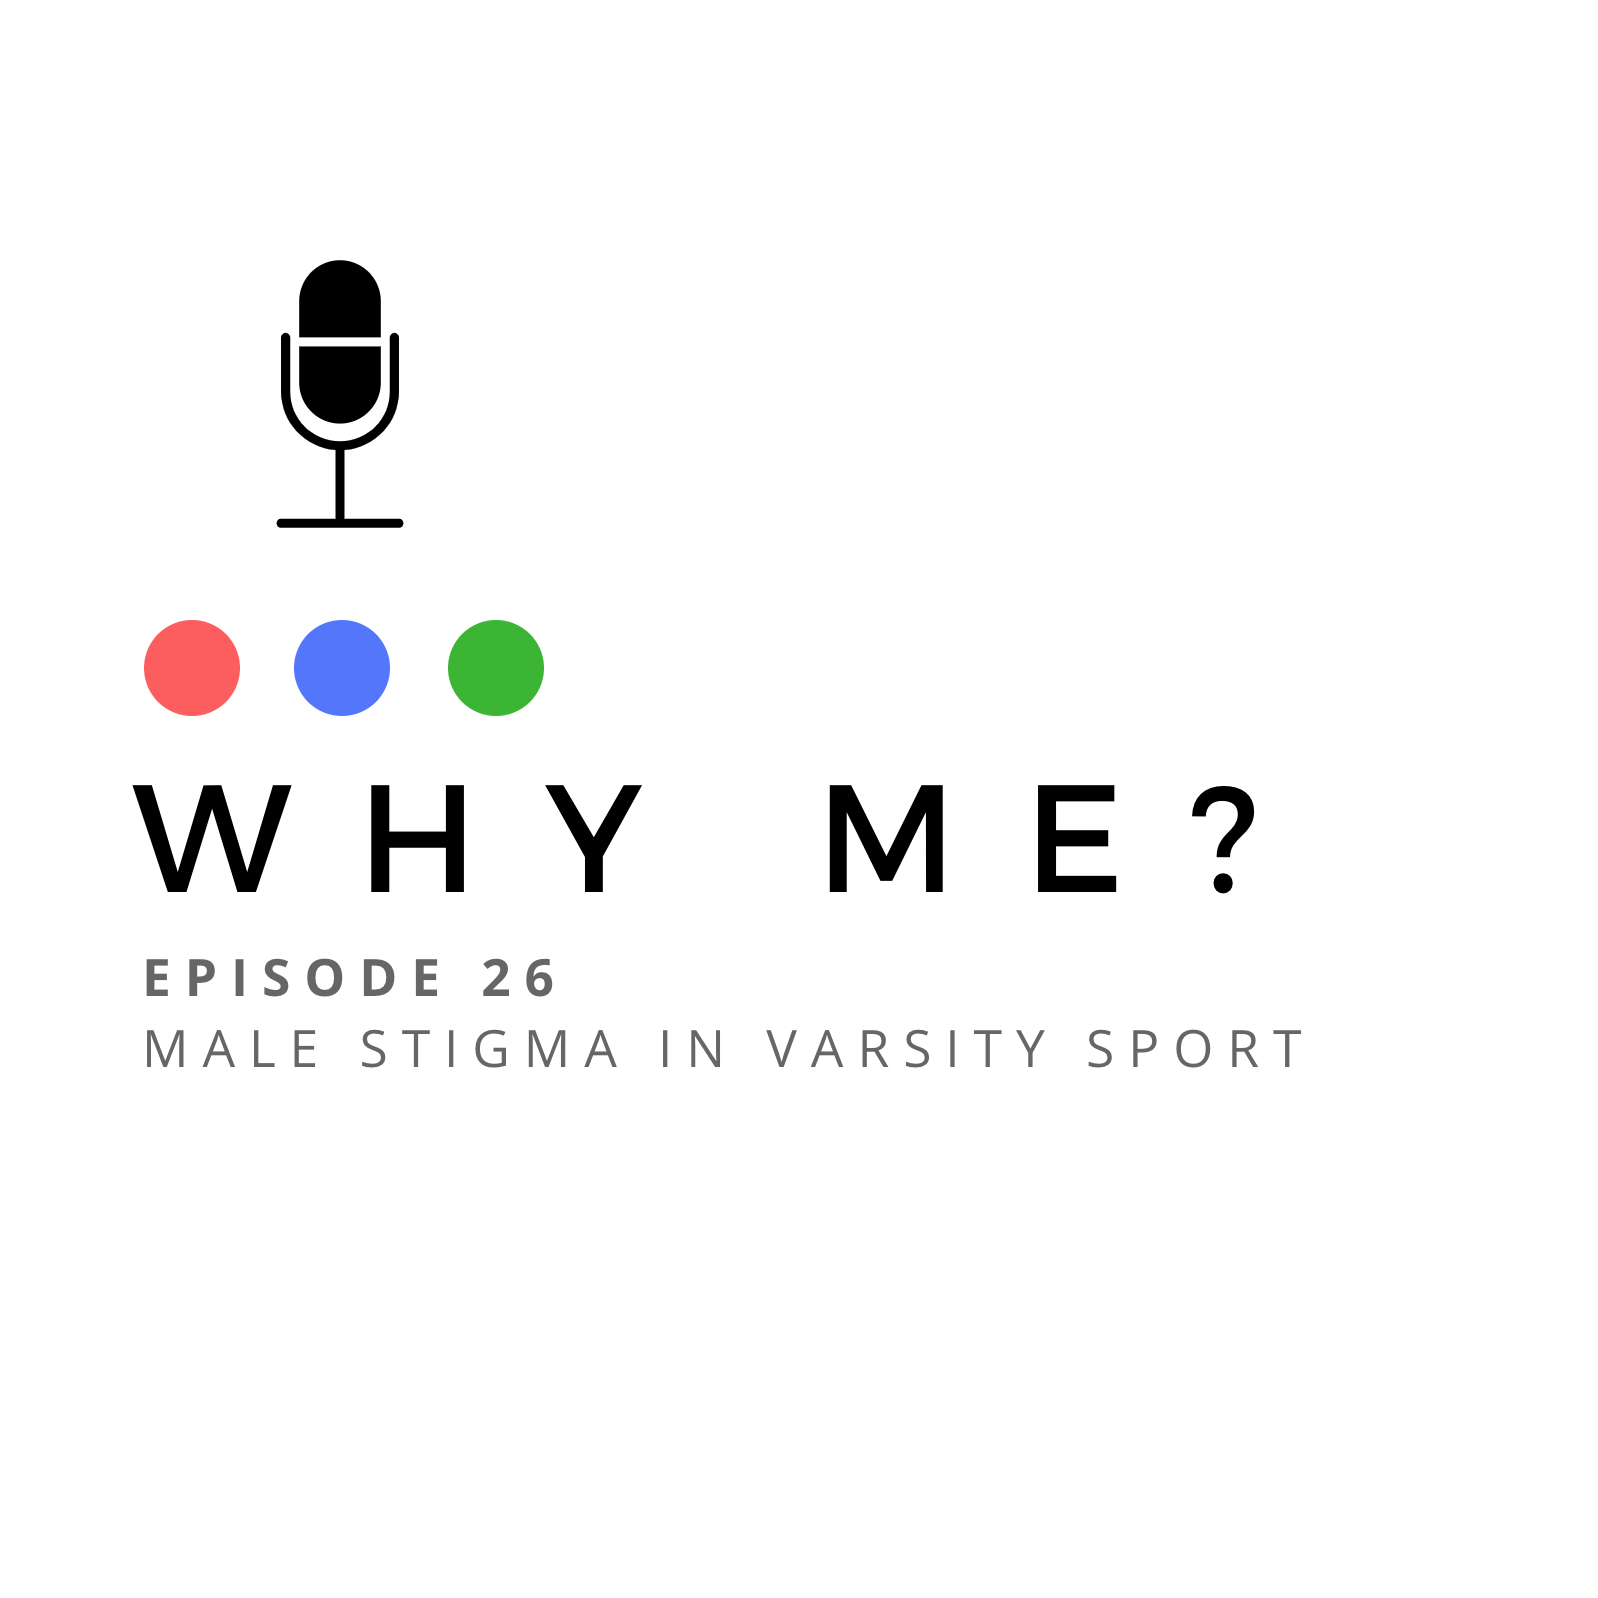 Why me episode 26